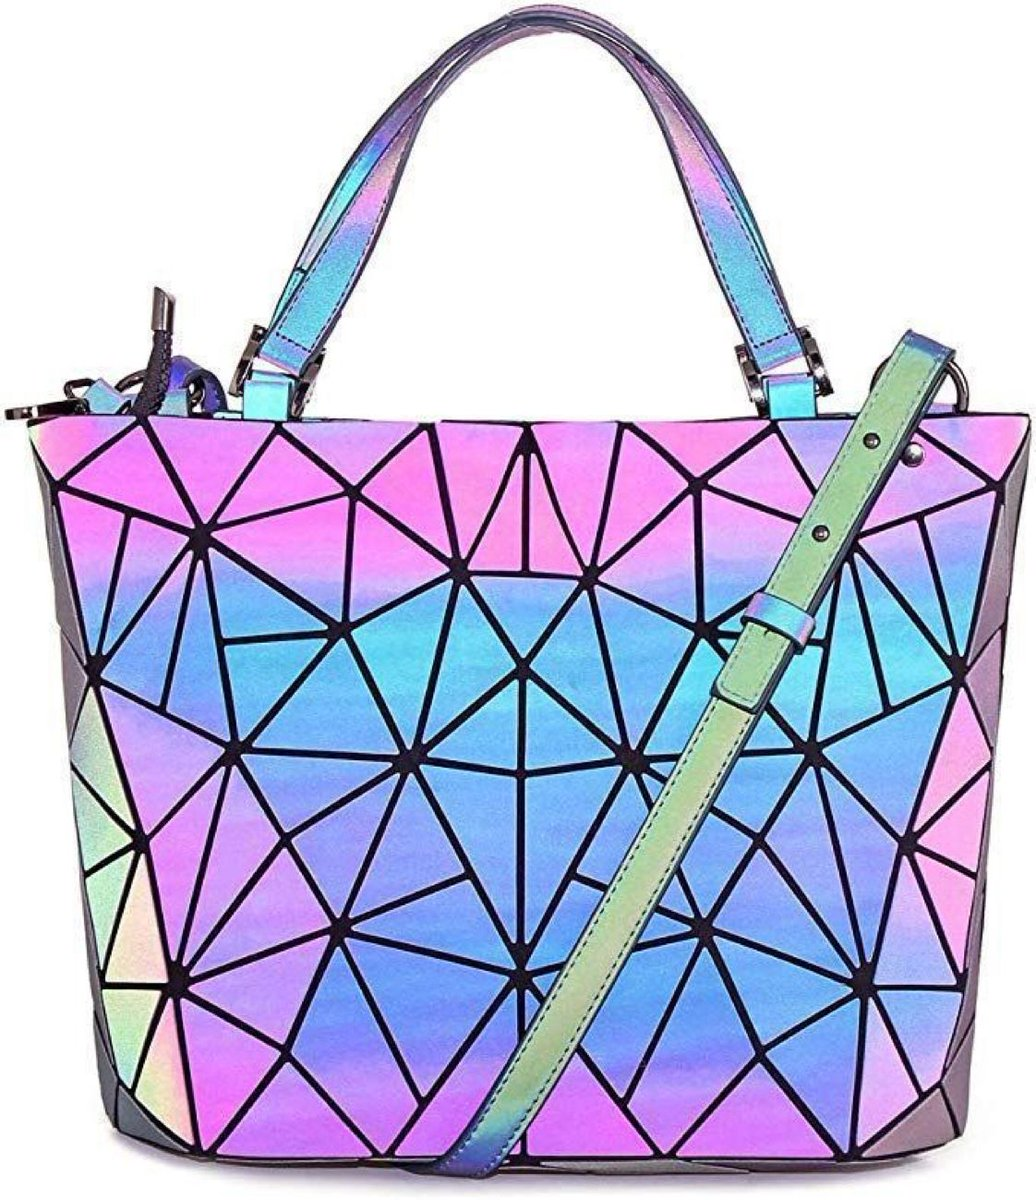 Holographic Geometric Purse    $23.61 with Free Prime Shipping    use code 26Z3I34I at checkout   #steals #deals #stealsanddeals